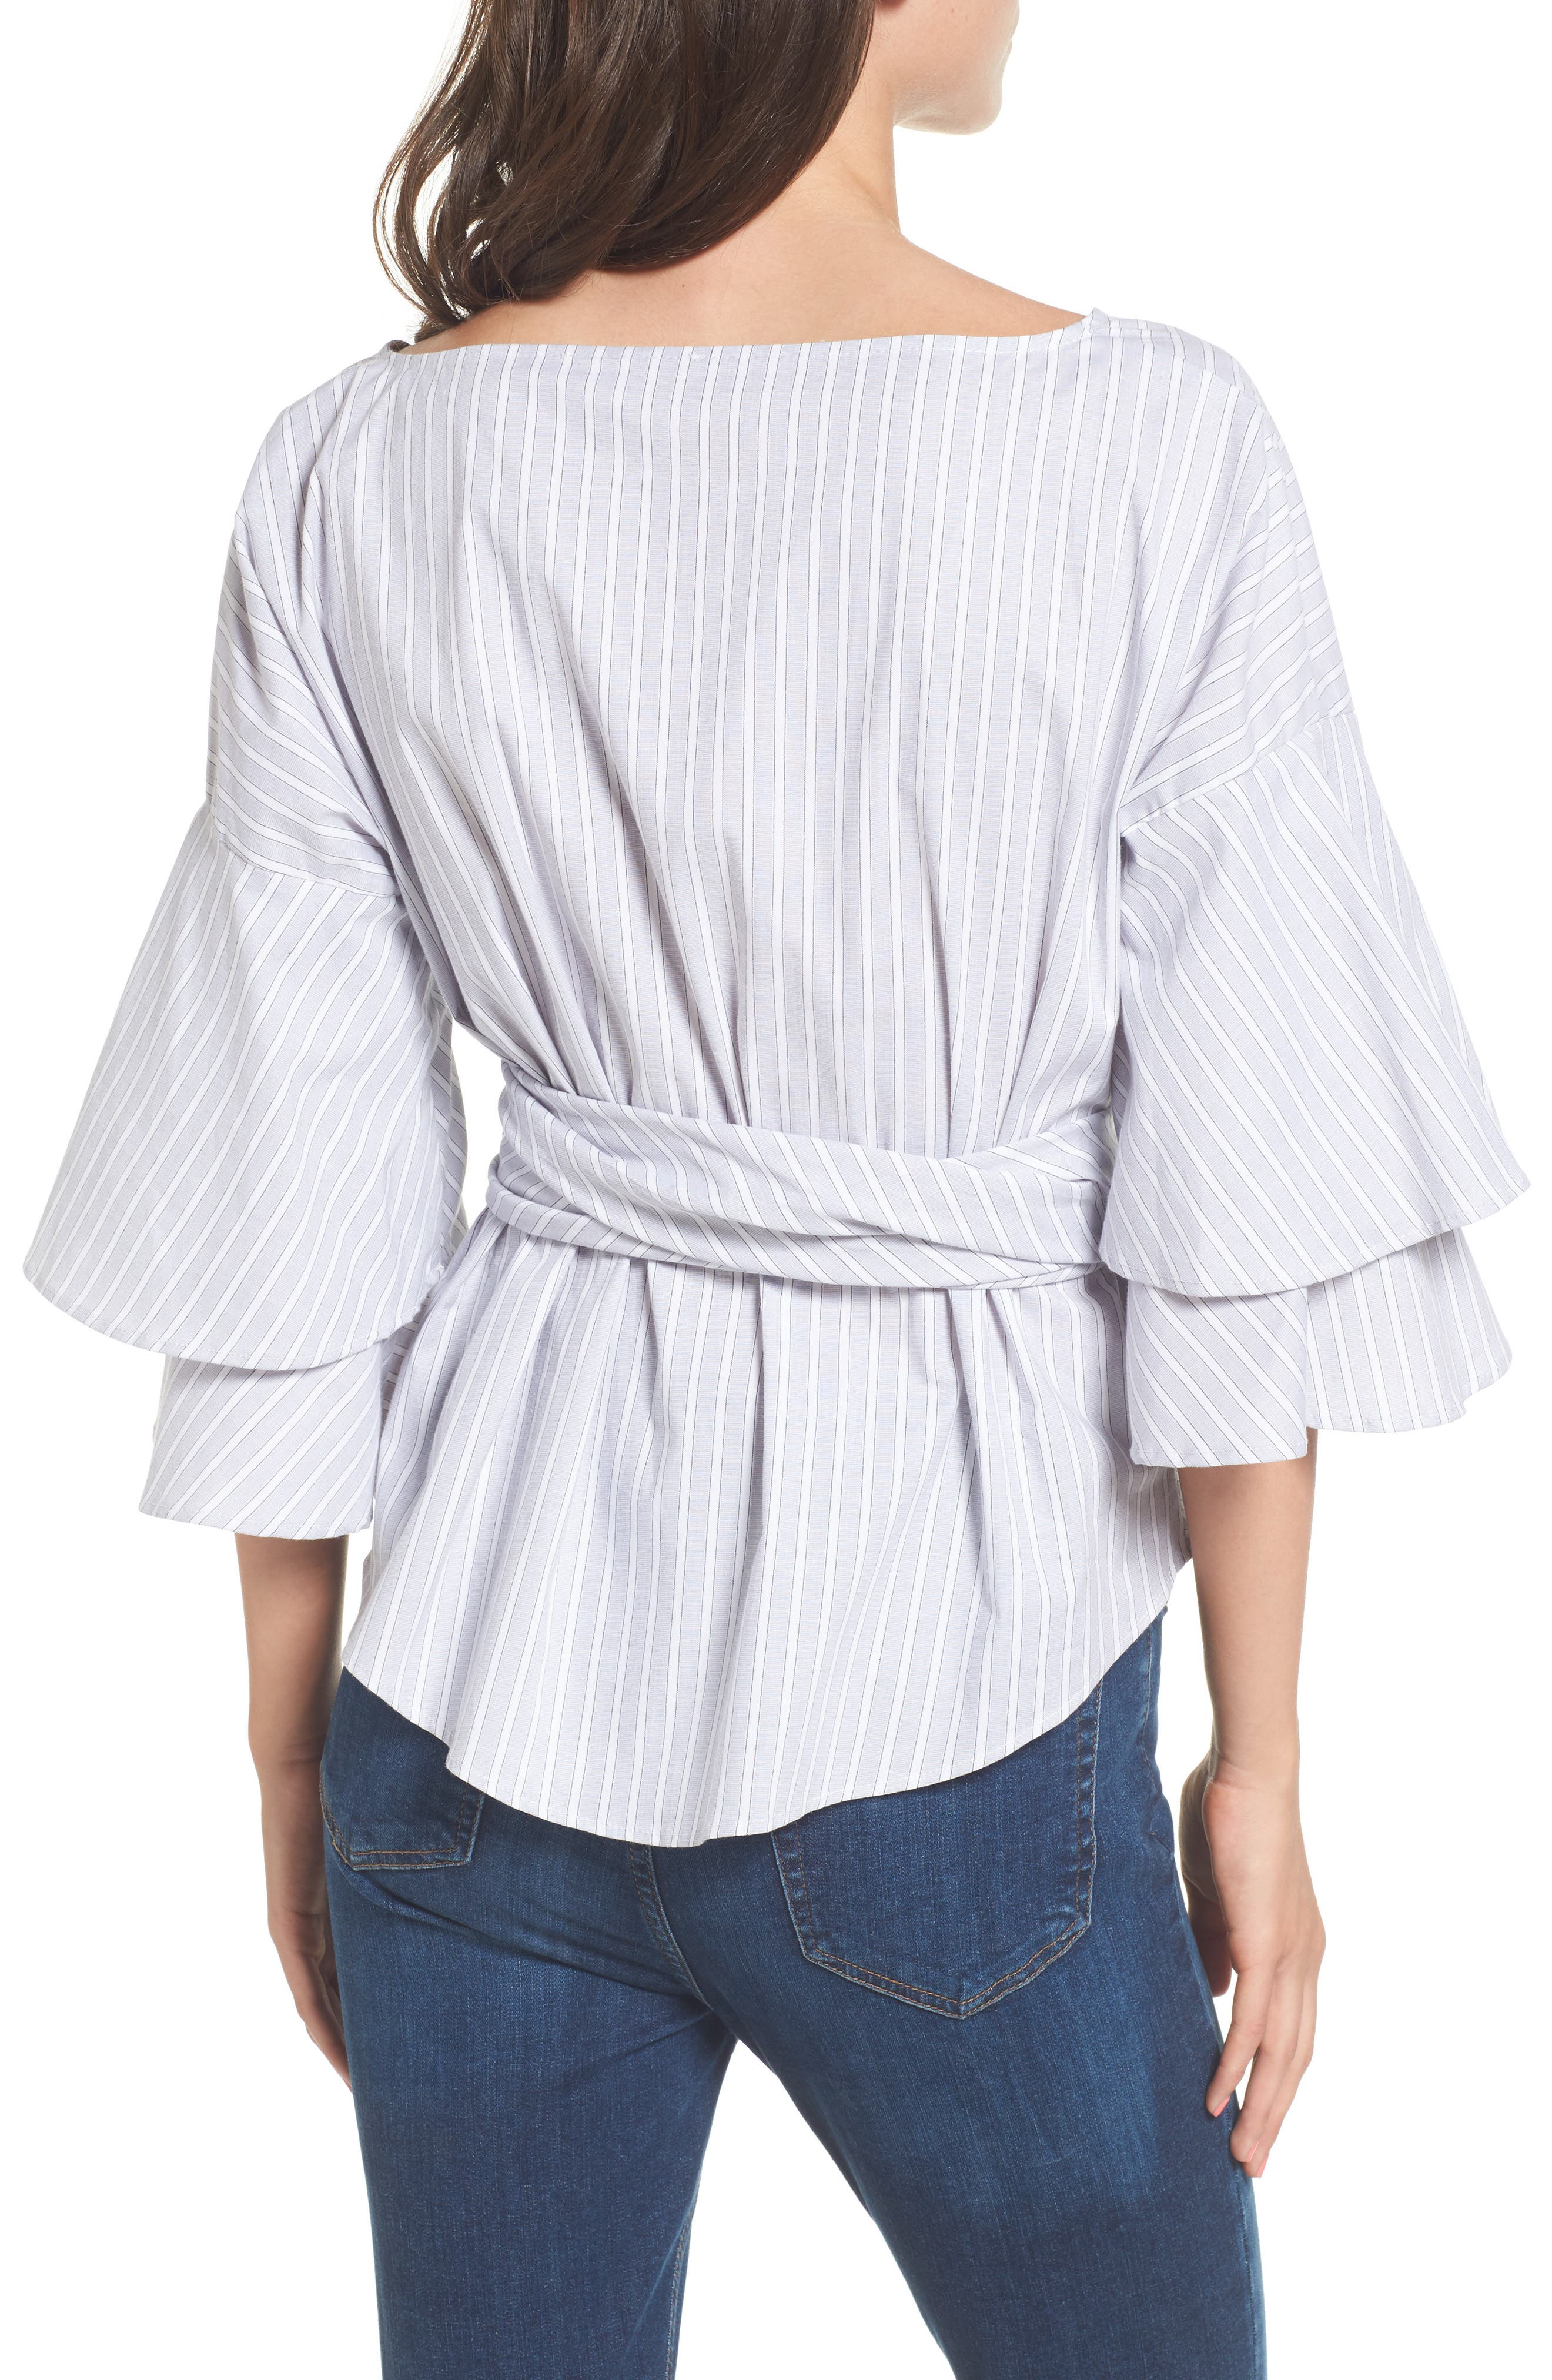 Beckett Tiered Bell Sleeve Top,                             Alternate thumbnail 9, color,